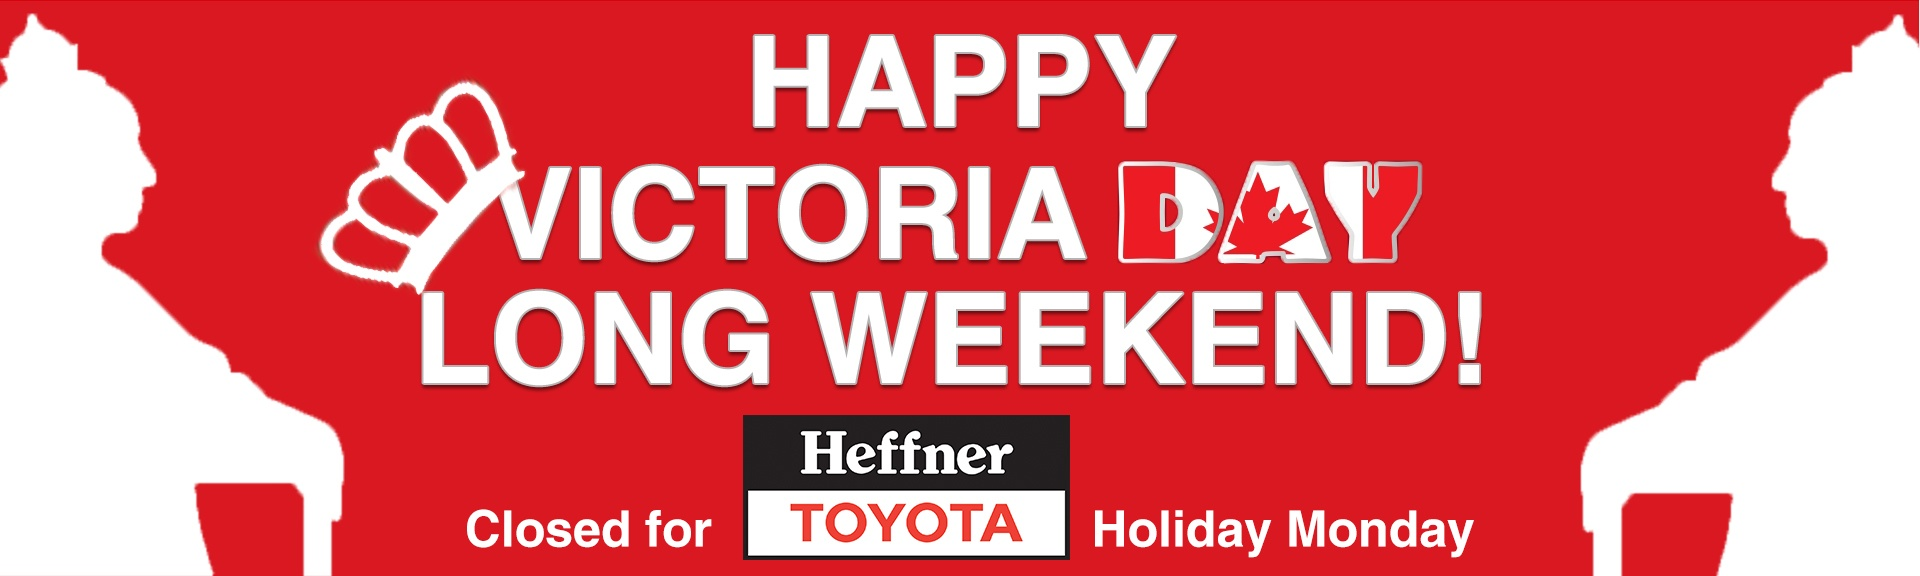 Victoria Day Hours_Heffner Toyota